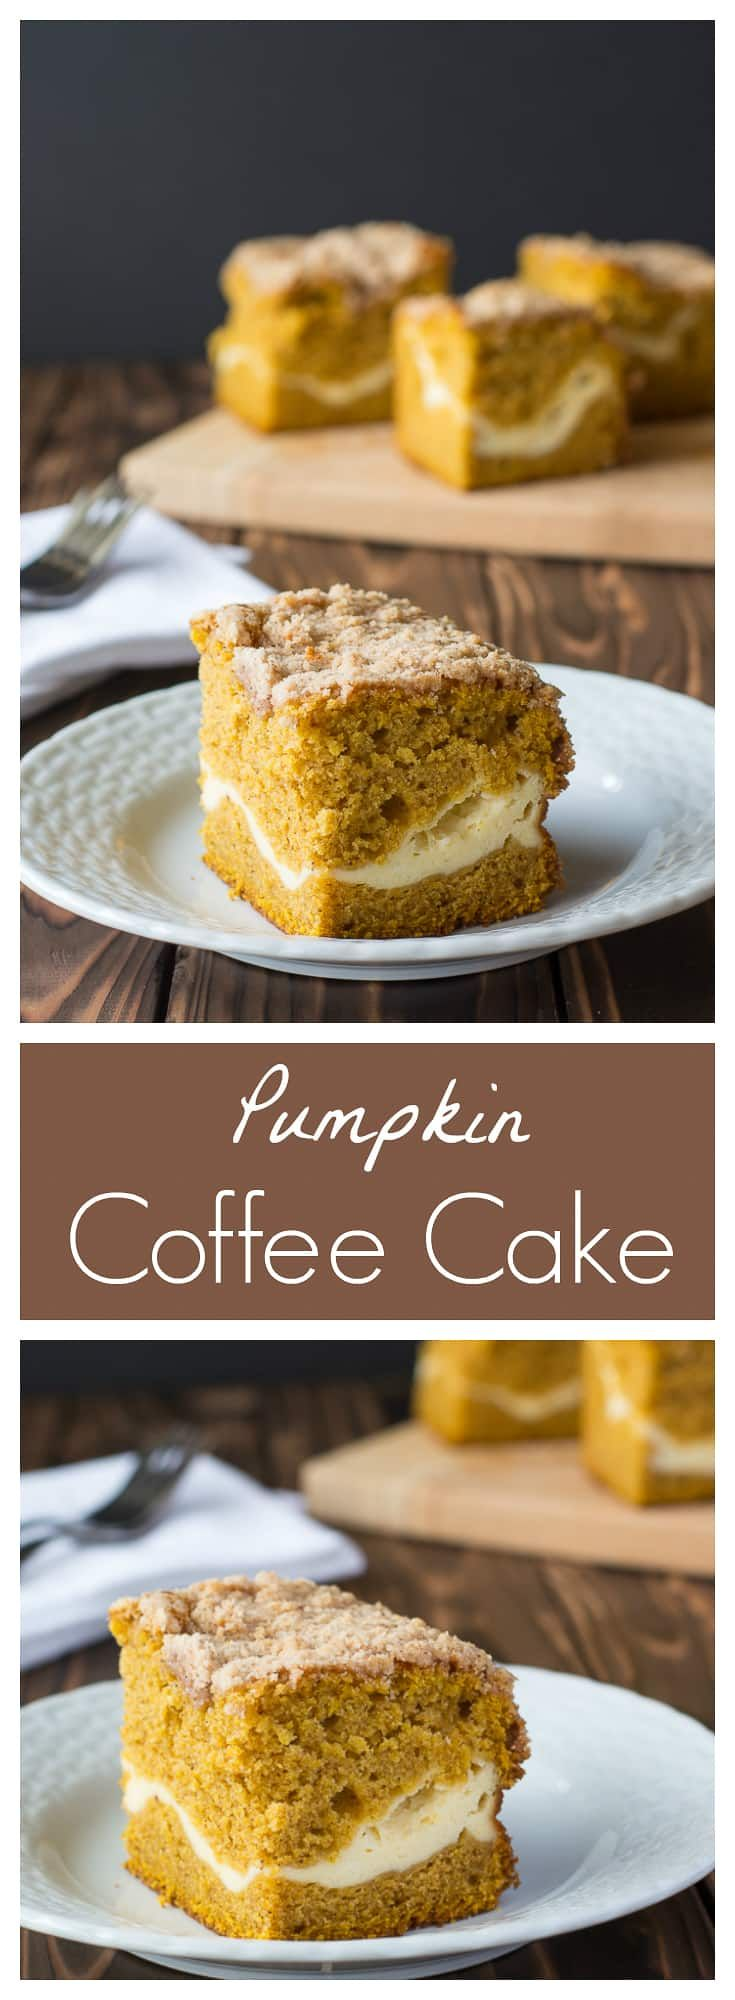 Pumpkin Coffee Cake layered with cream cheese and crispy streusel topping! | Kitchen Gidget